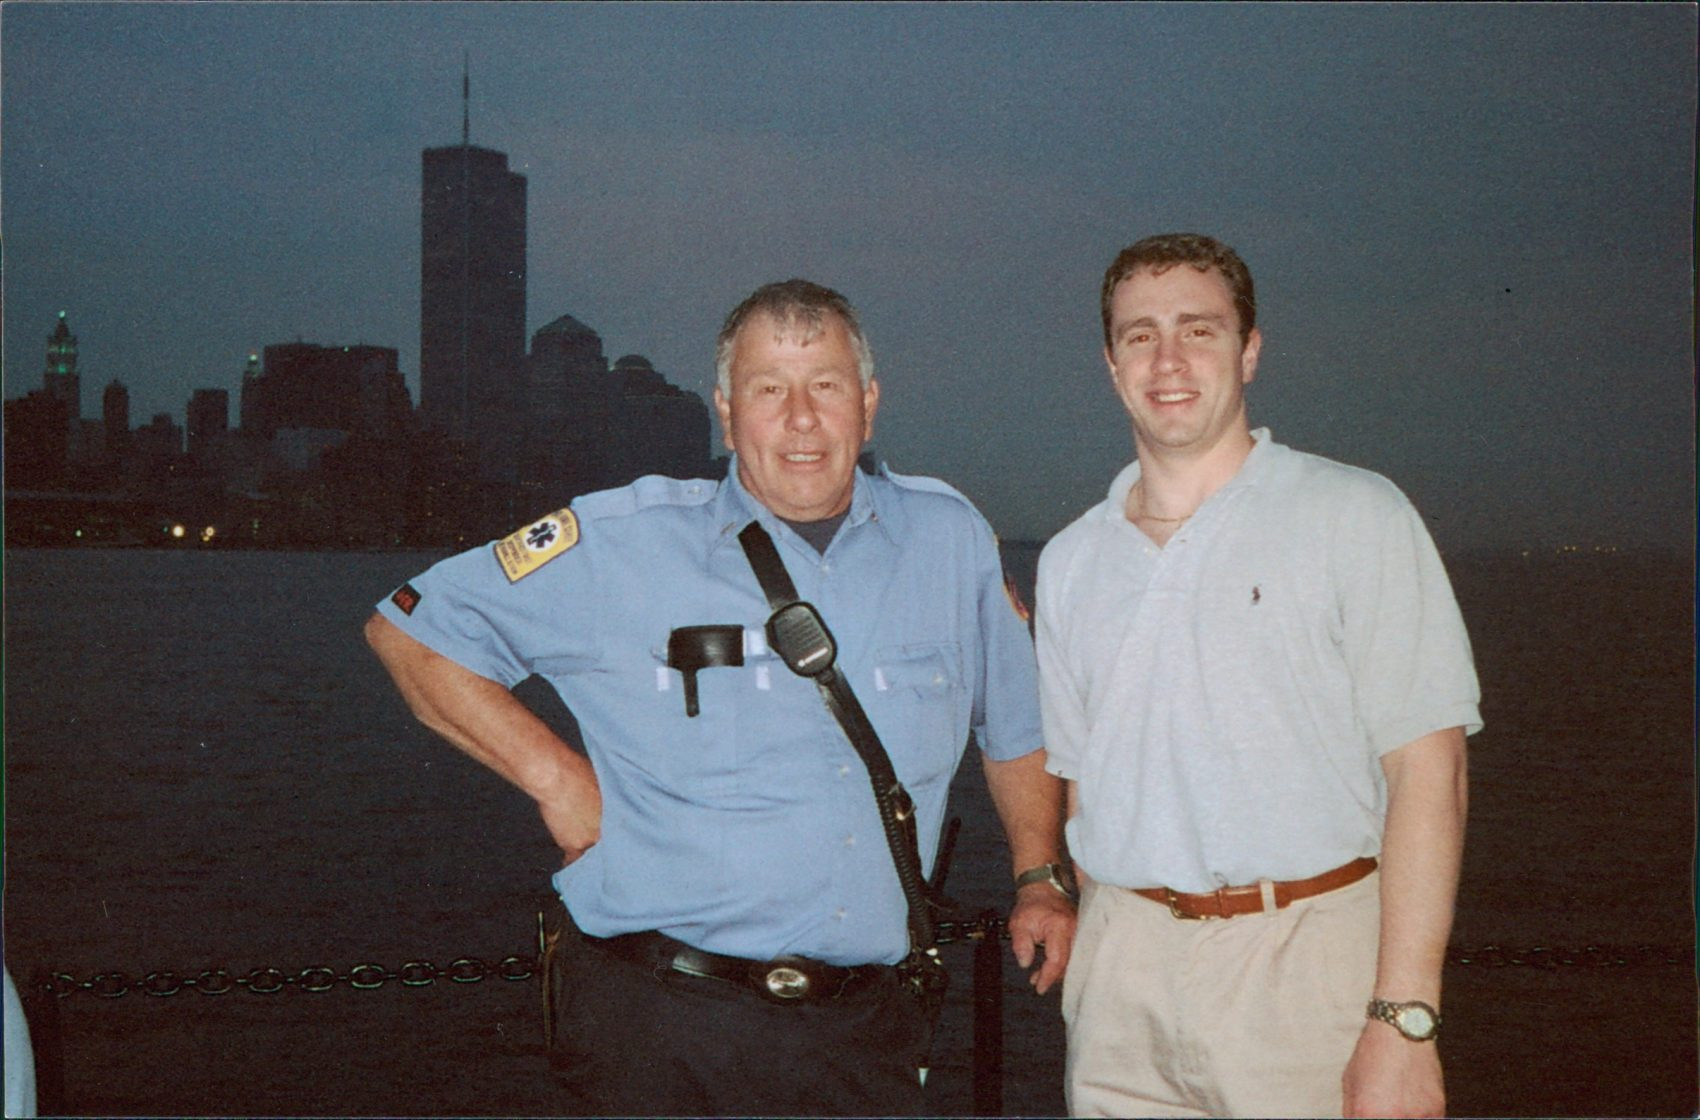 Crowther stands with Harry Wanaker, a lieutenant in the Nyack Fire Department. Lower Manhattan and the World Trade Center towers are visible in the background. (Courtesy The Crowther Family)